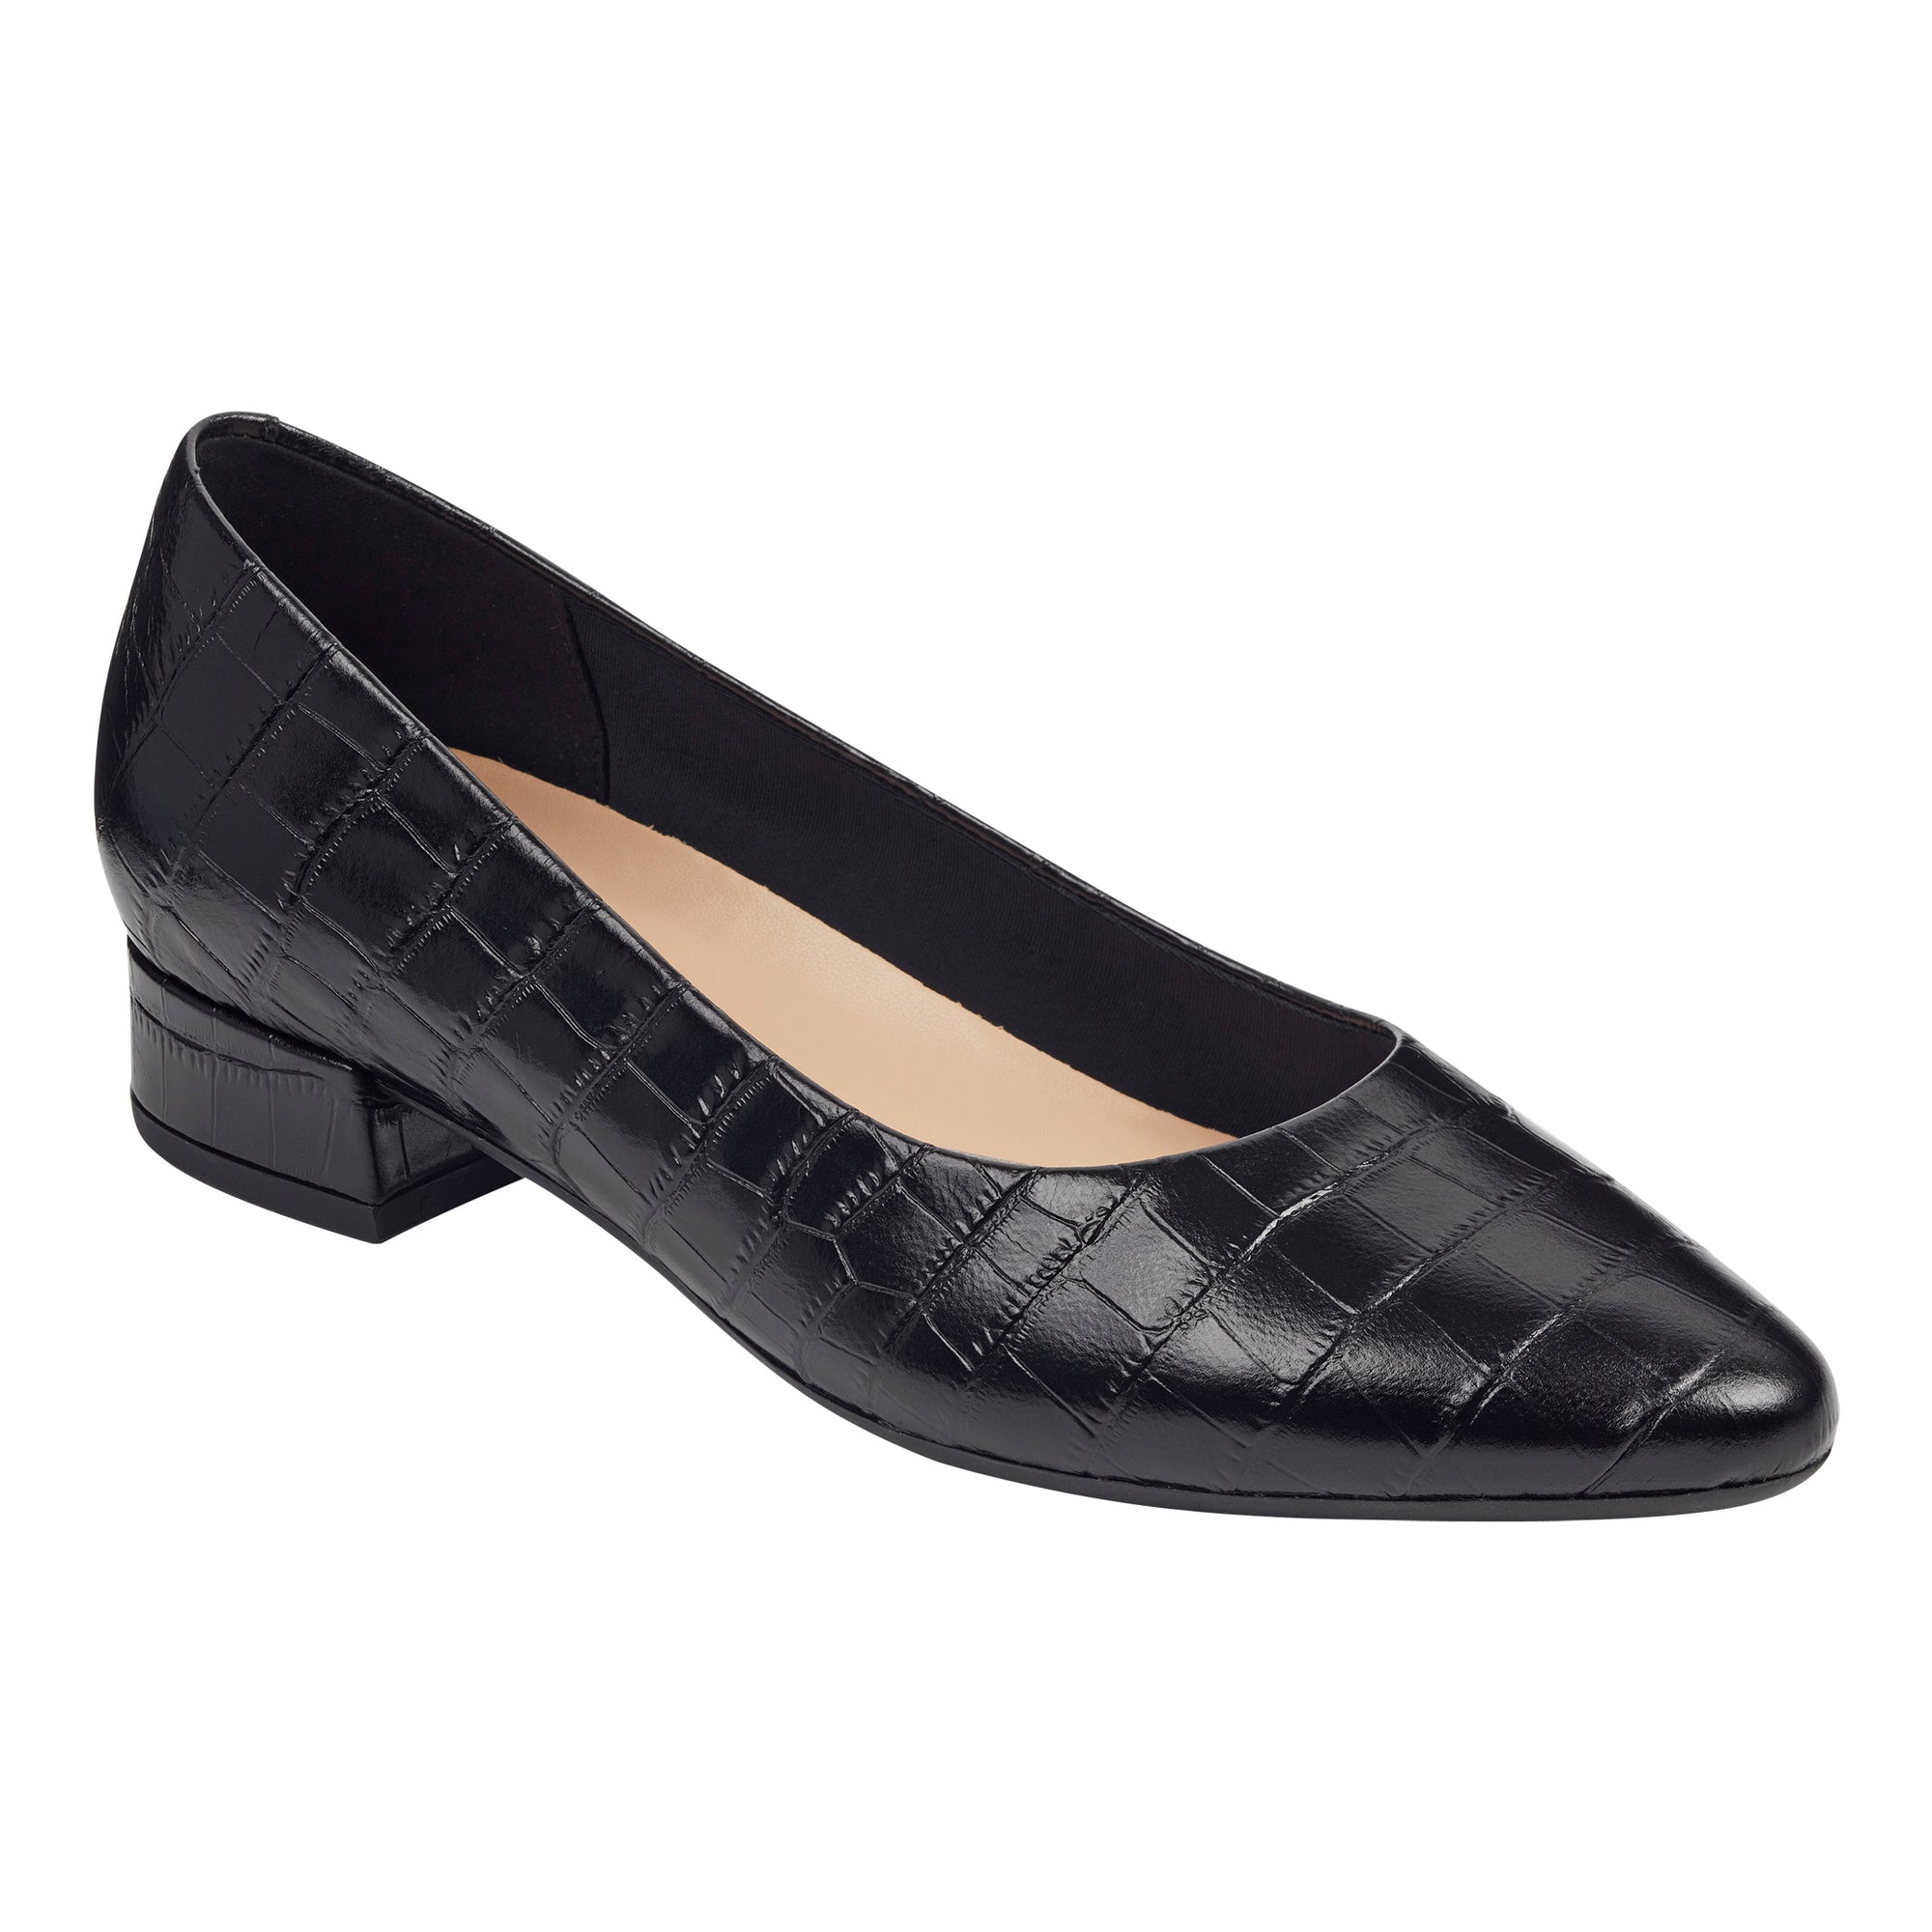 Caldise Low Heel Dress Shoes